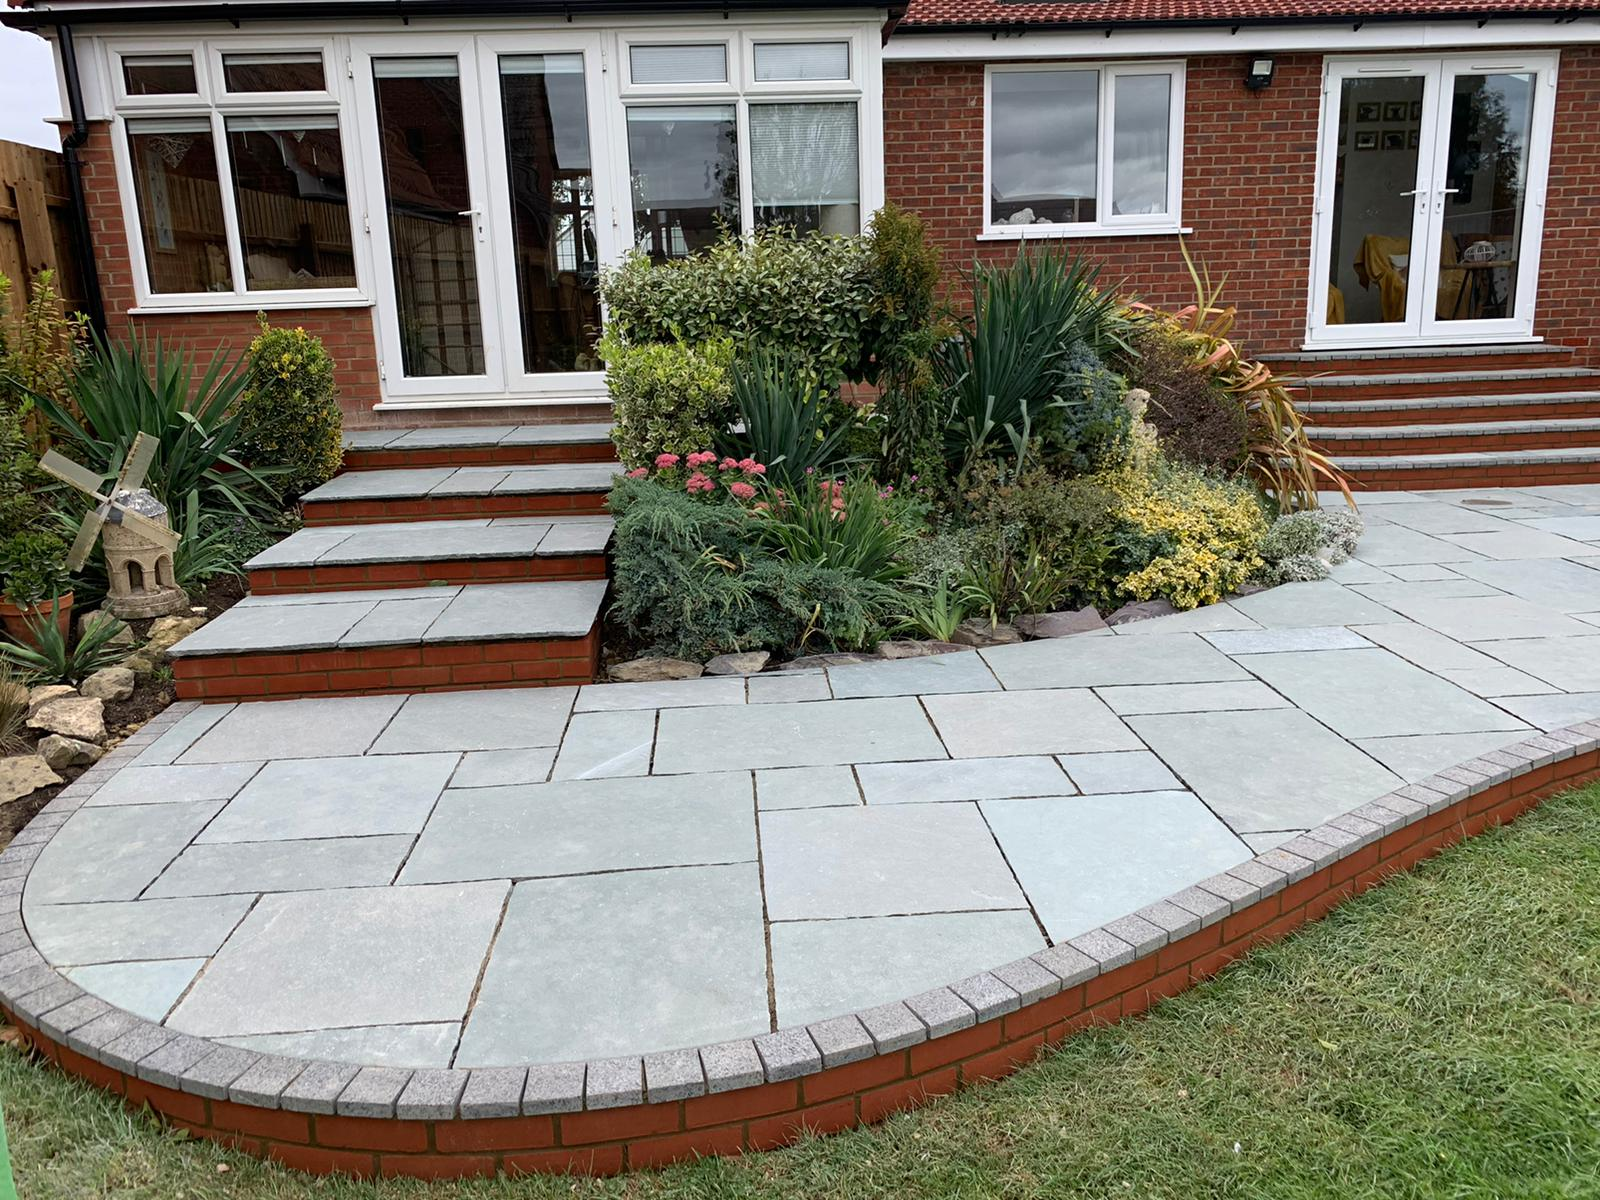 Landscaping Company Cambridge - 5